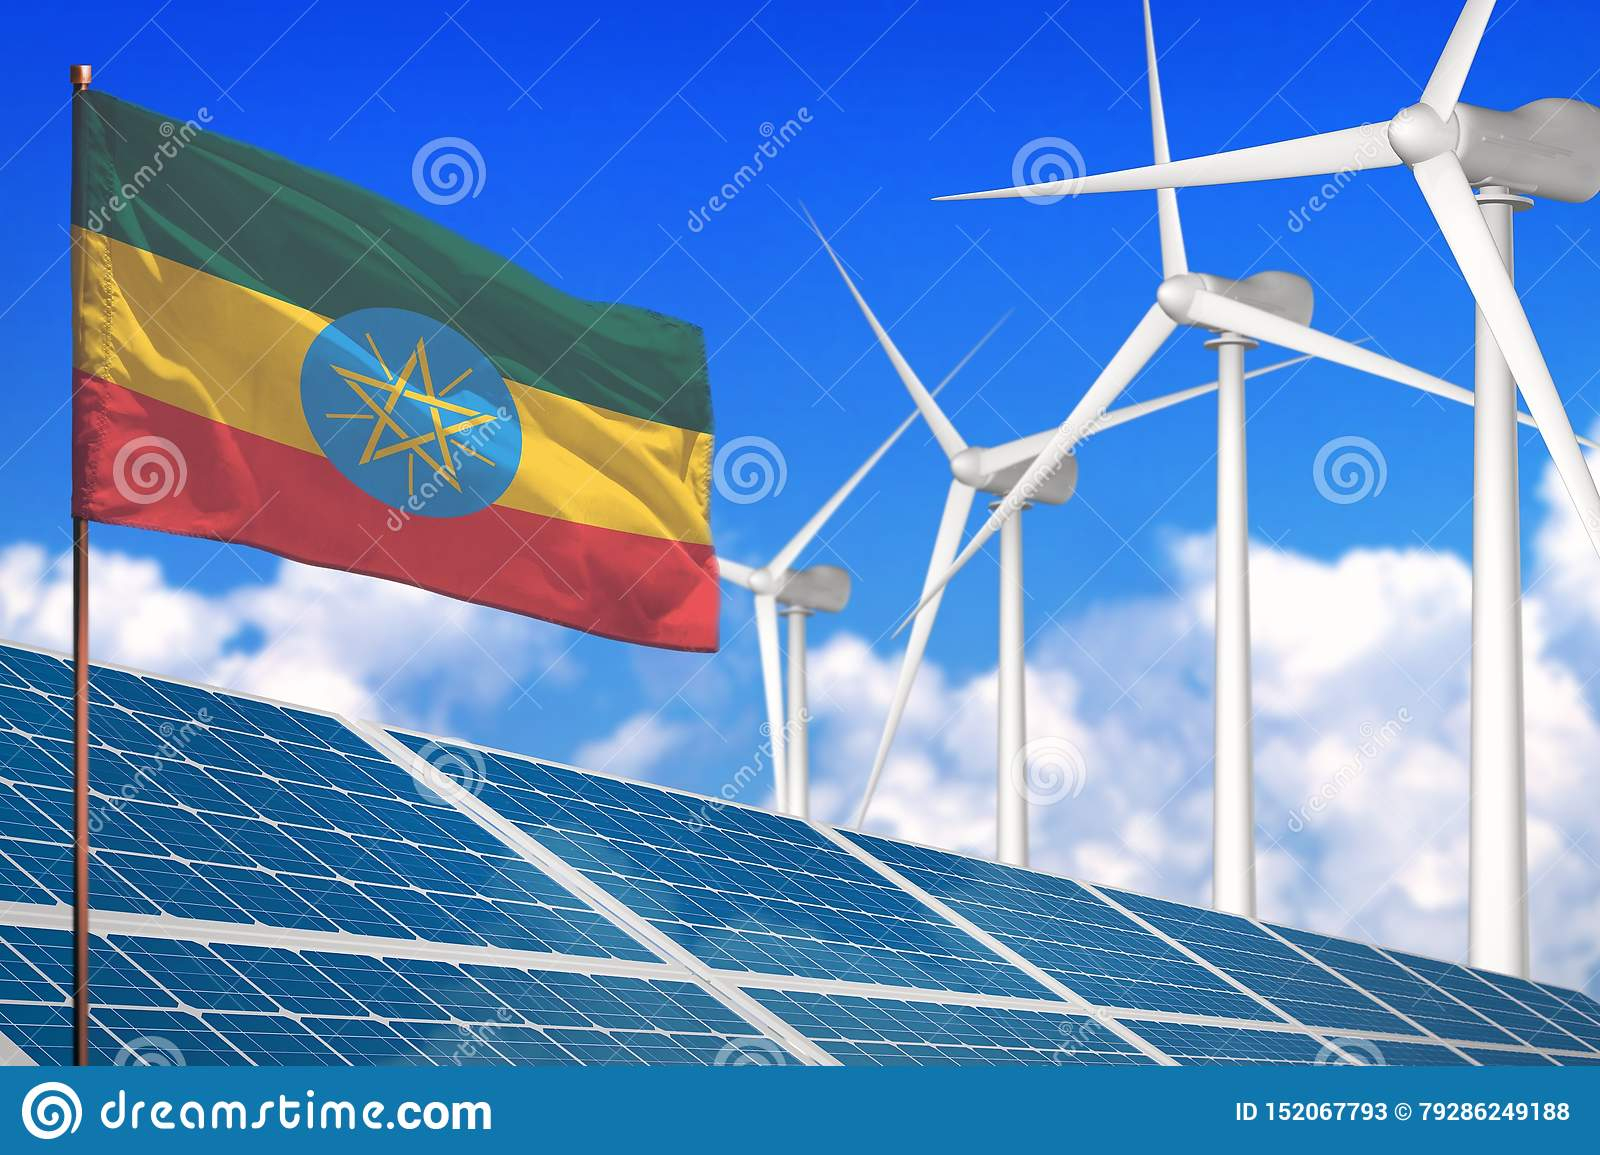 Ethiopia solar and wind energy, renewable energy concept with solar panels - renewable energy against global warming - industrial